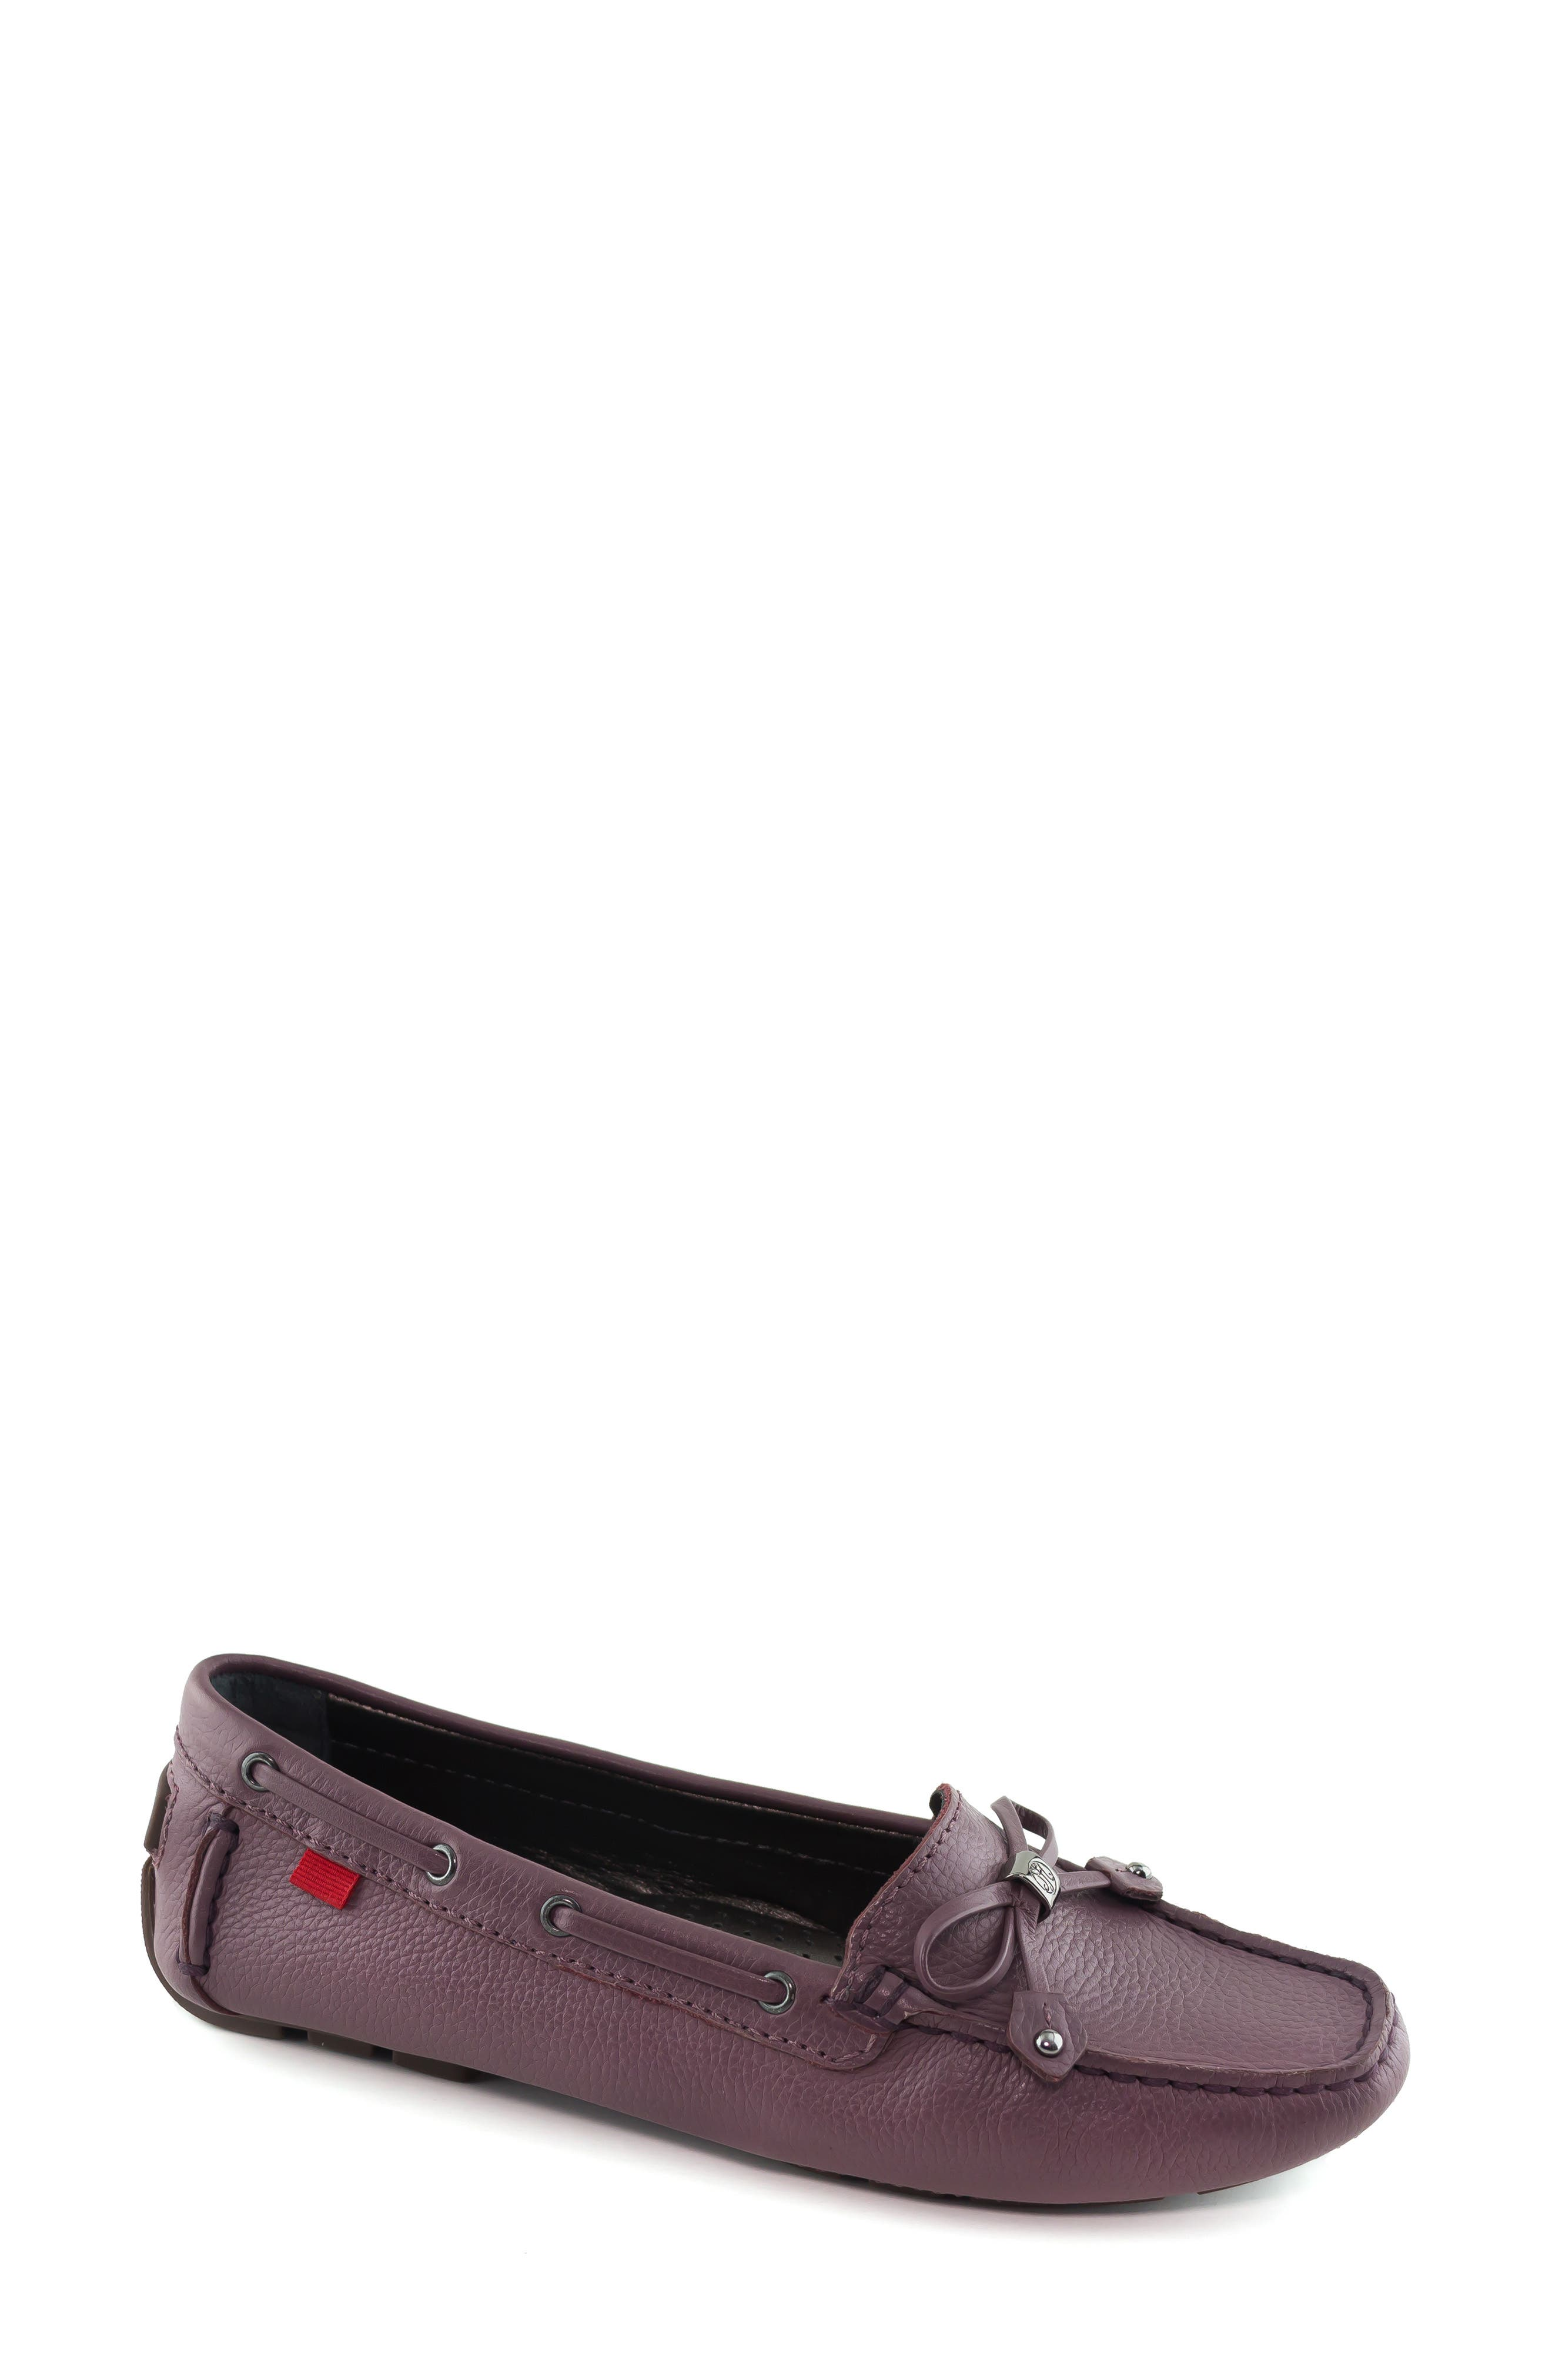 MARC JOSEPH NEW YORK, Cypress Hill III Loafer, Main thumbnail 1, color, IRIS LEATHER